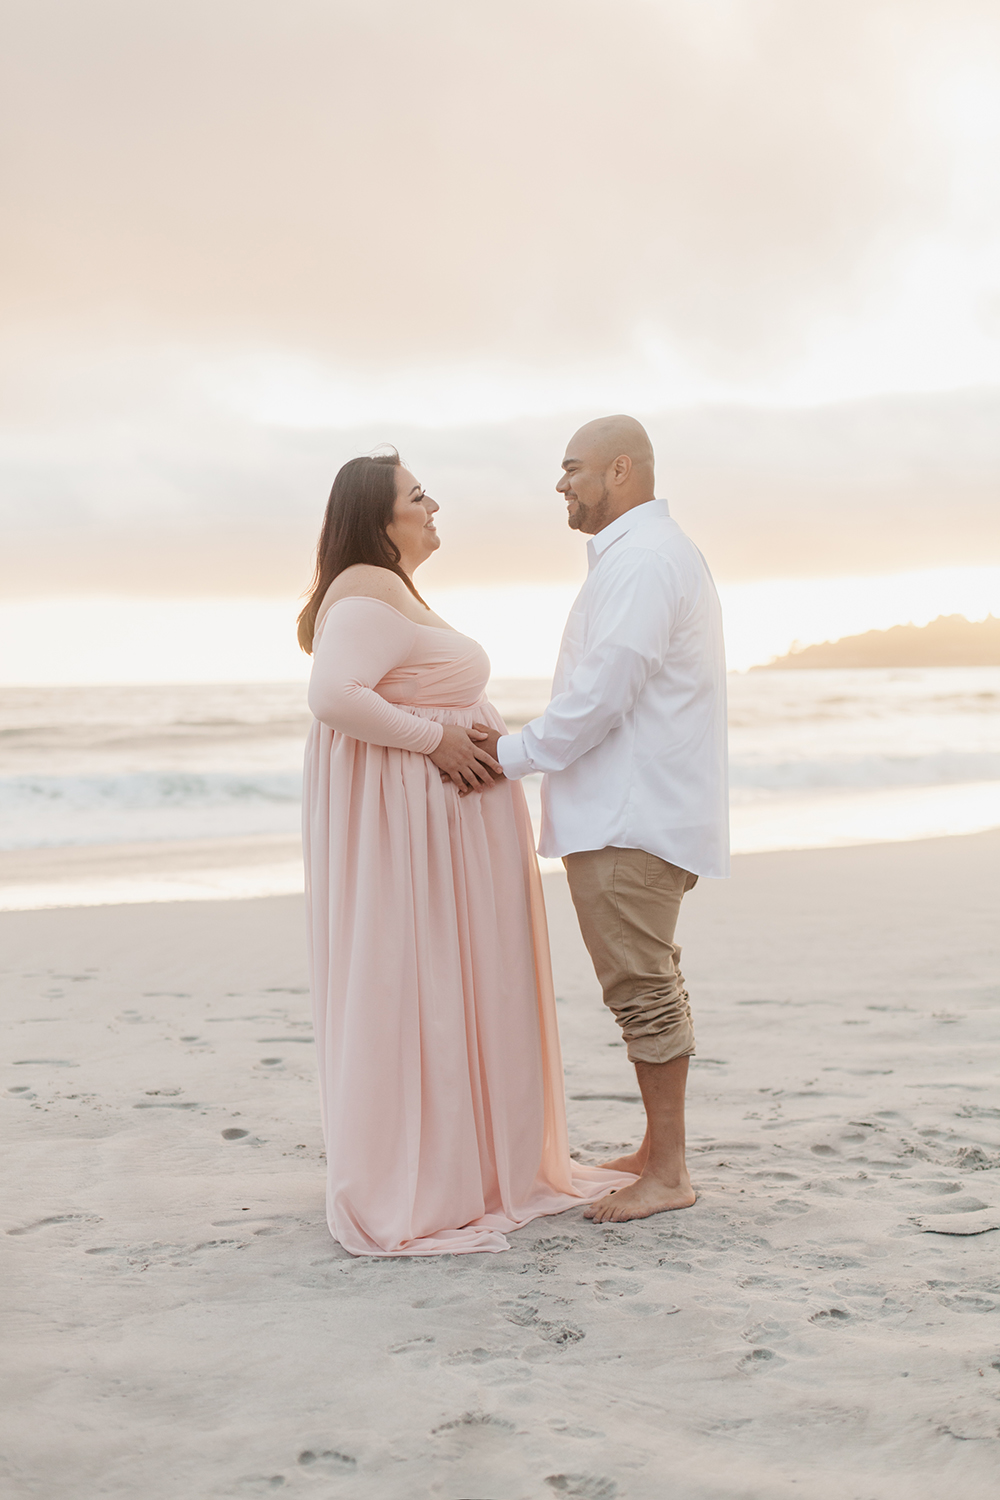 Husband and wife standing together during the maternity photo session at Carmel-by-the-sea.